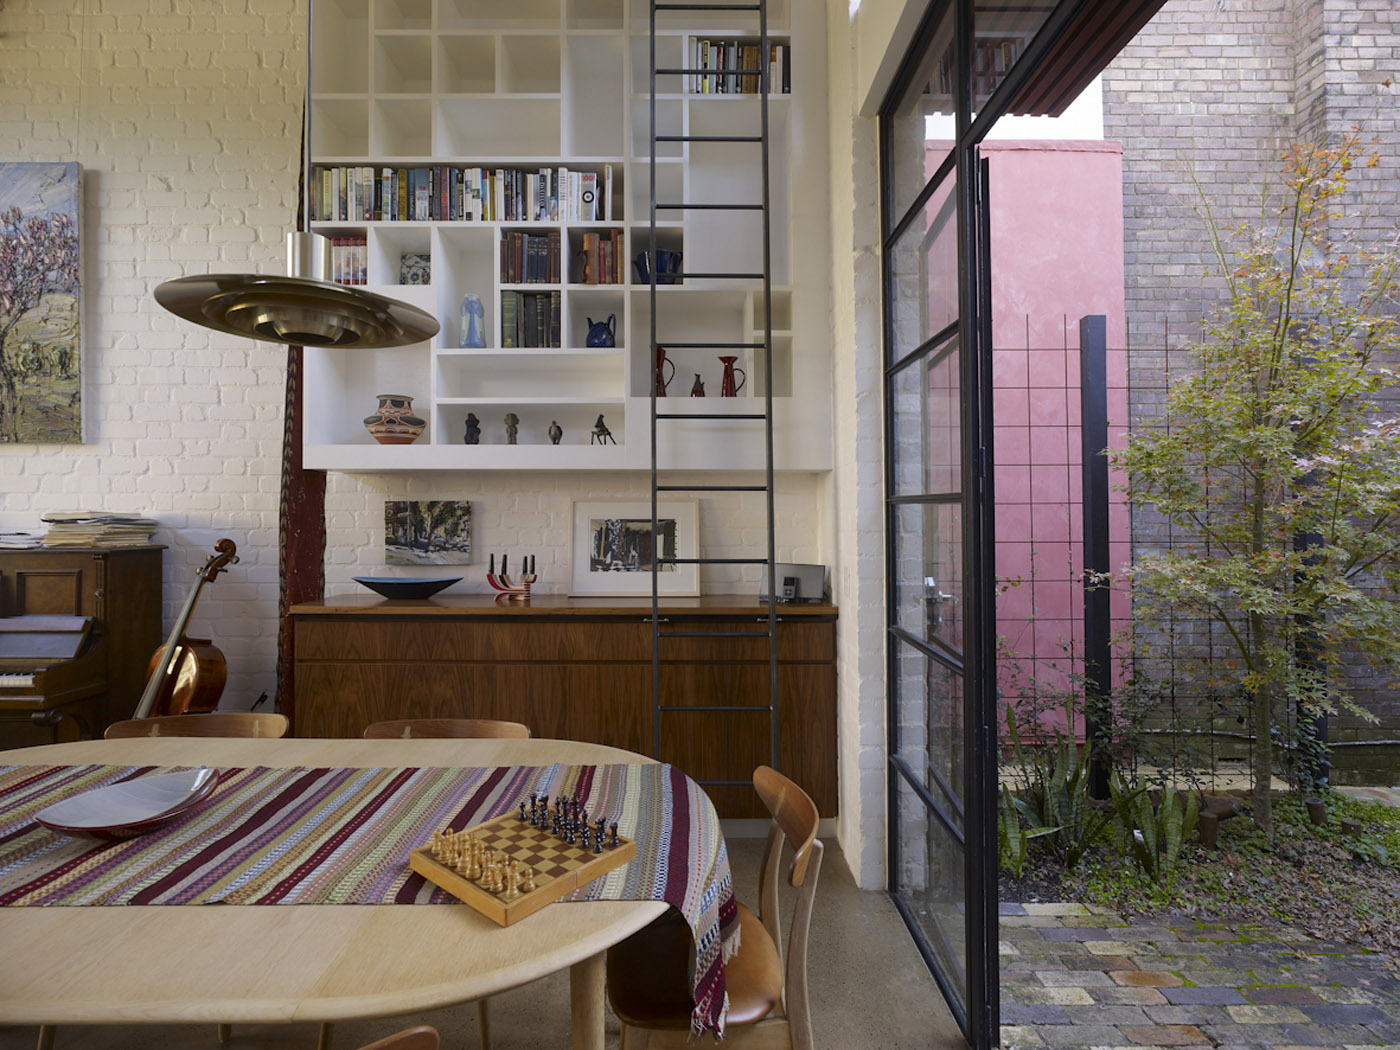 Smee Schoff House by award winning Sydney residential architecture firm Sam Crawford Architects. Minimal material palette provide a canvas for multiple objects and artworks to be displayed